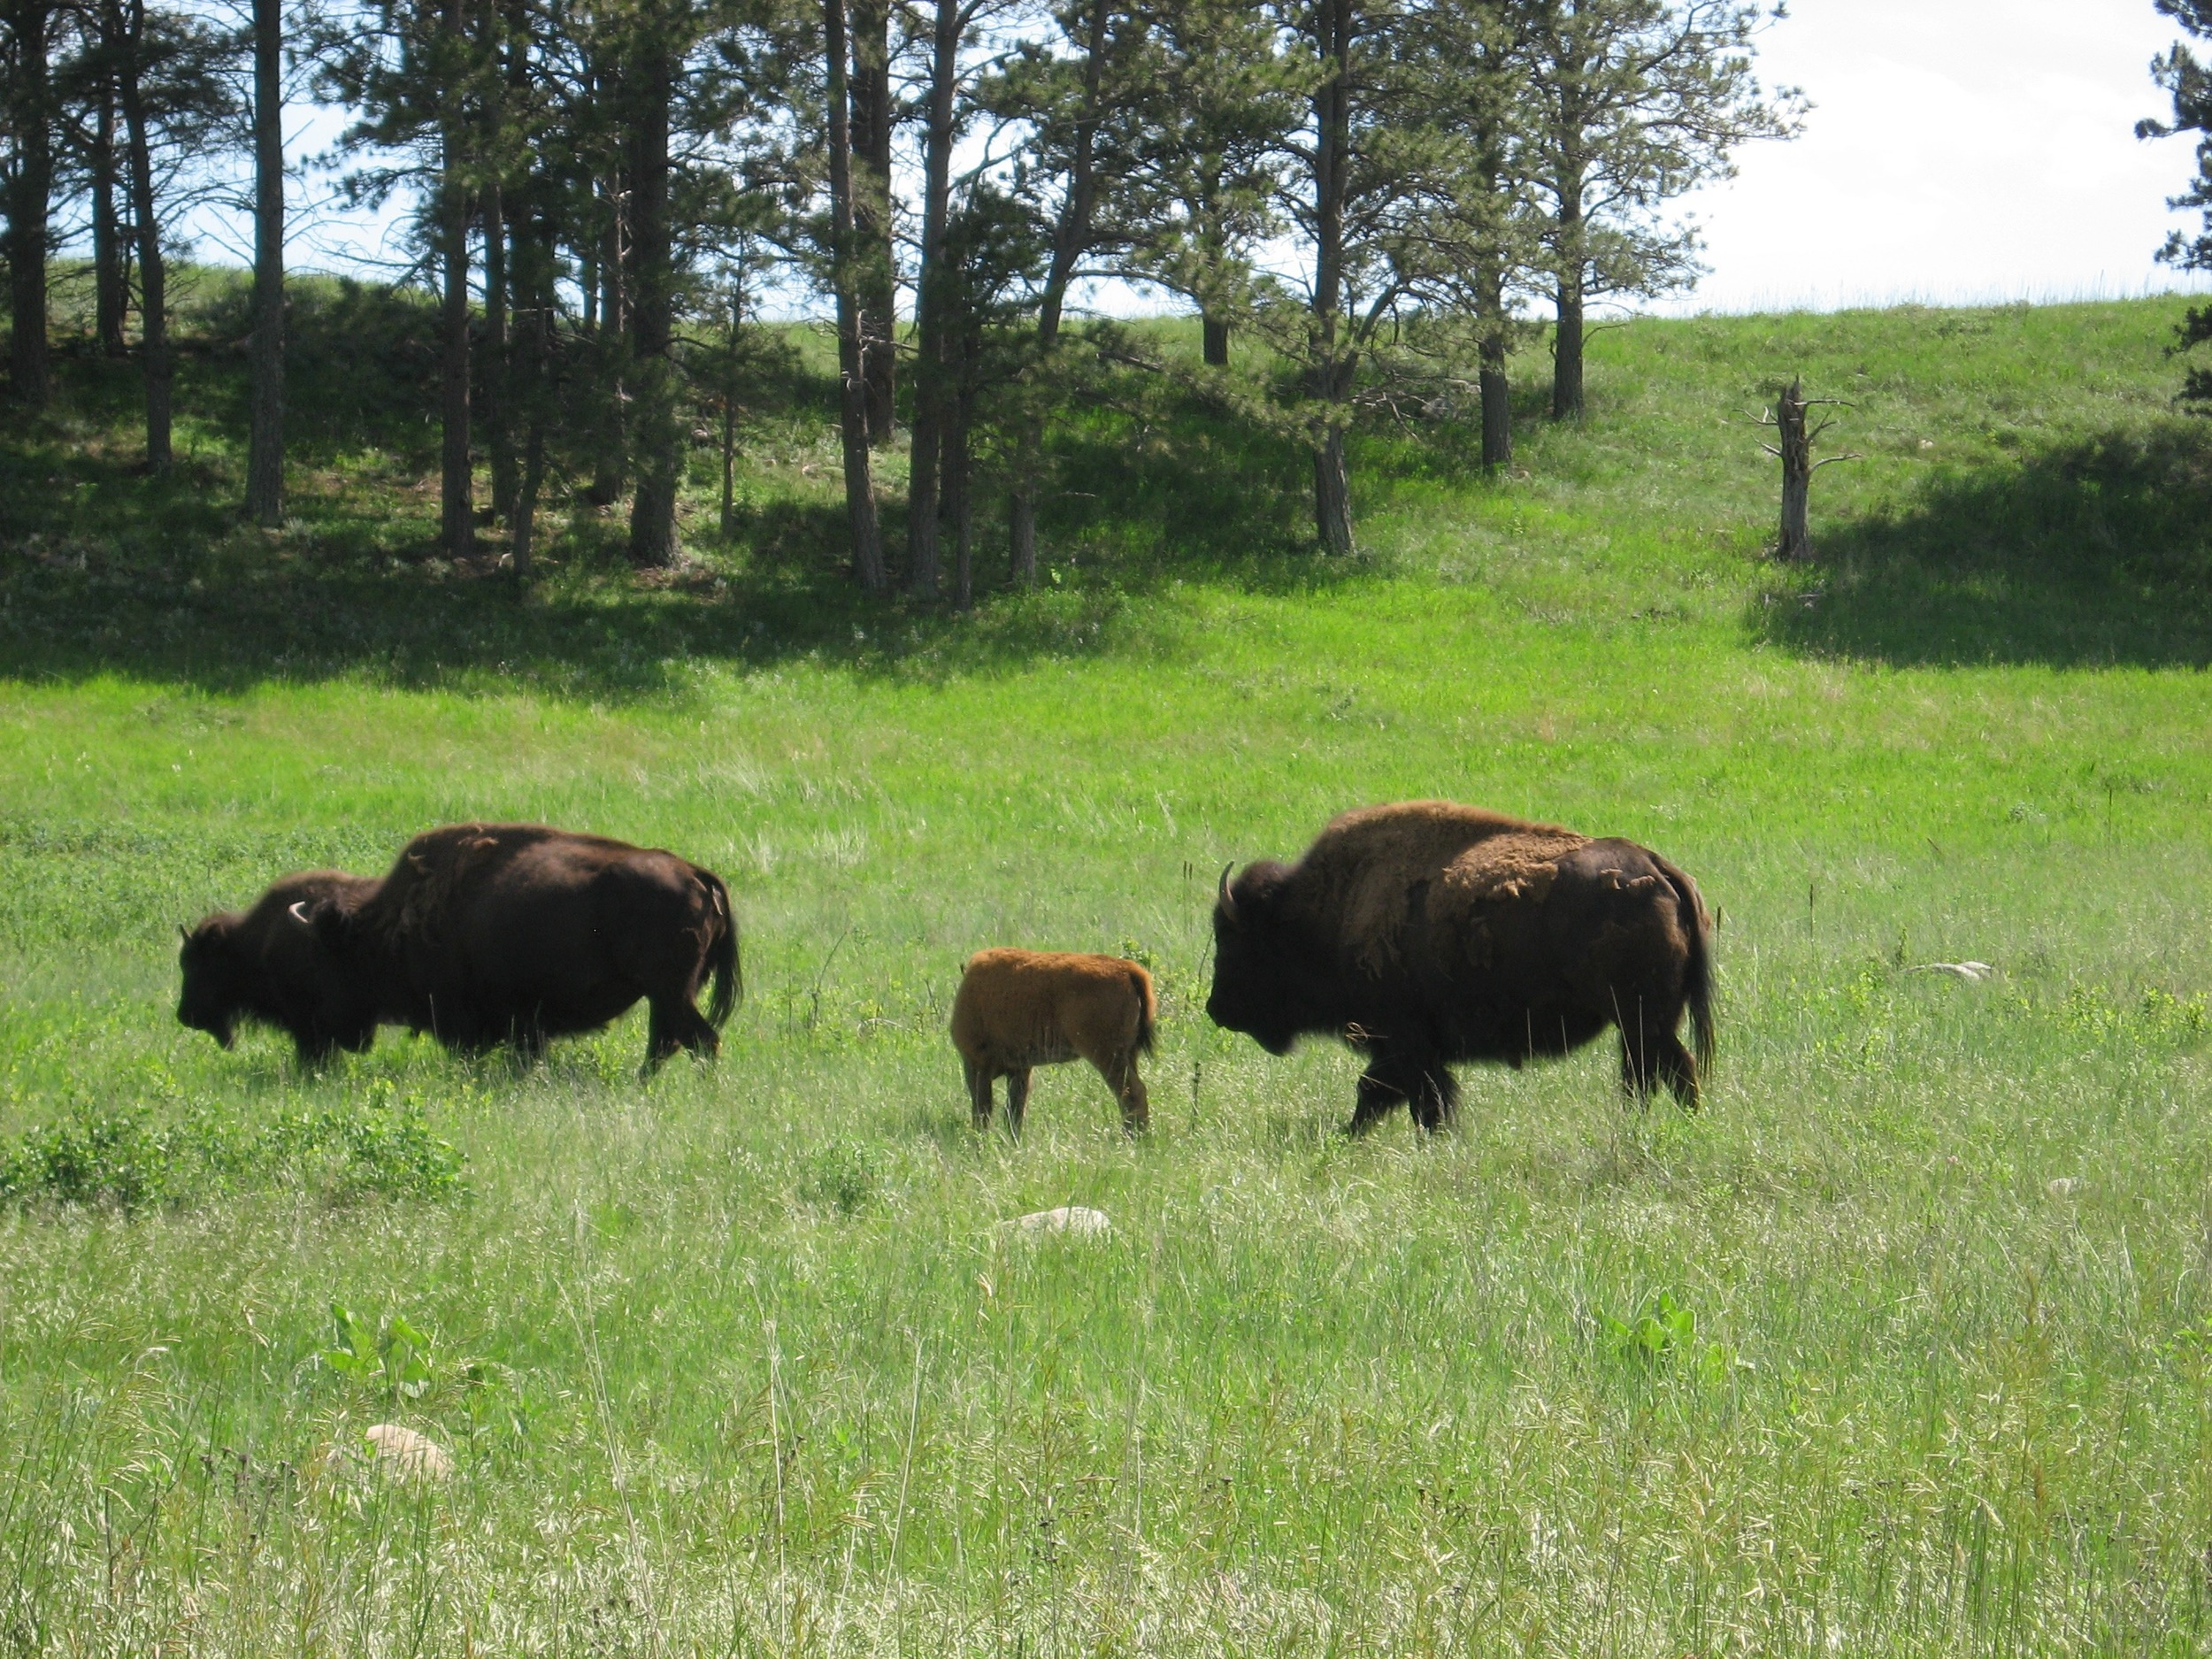 More Baby Bison